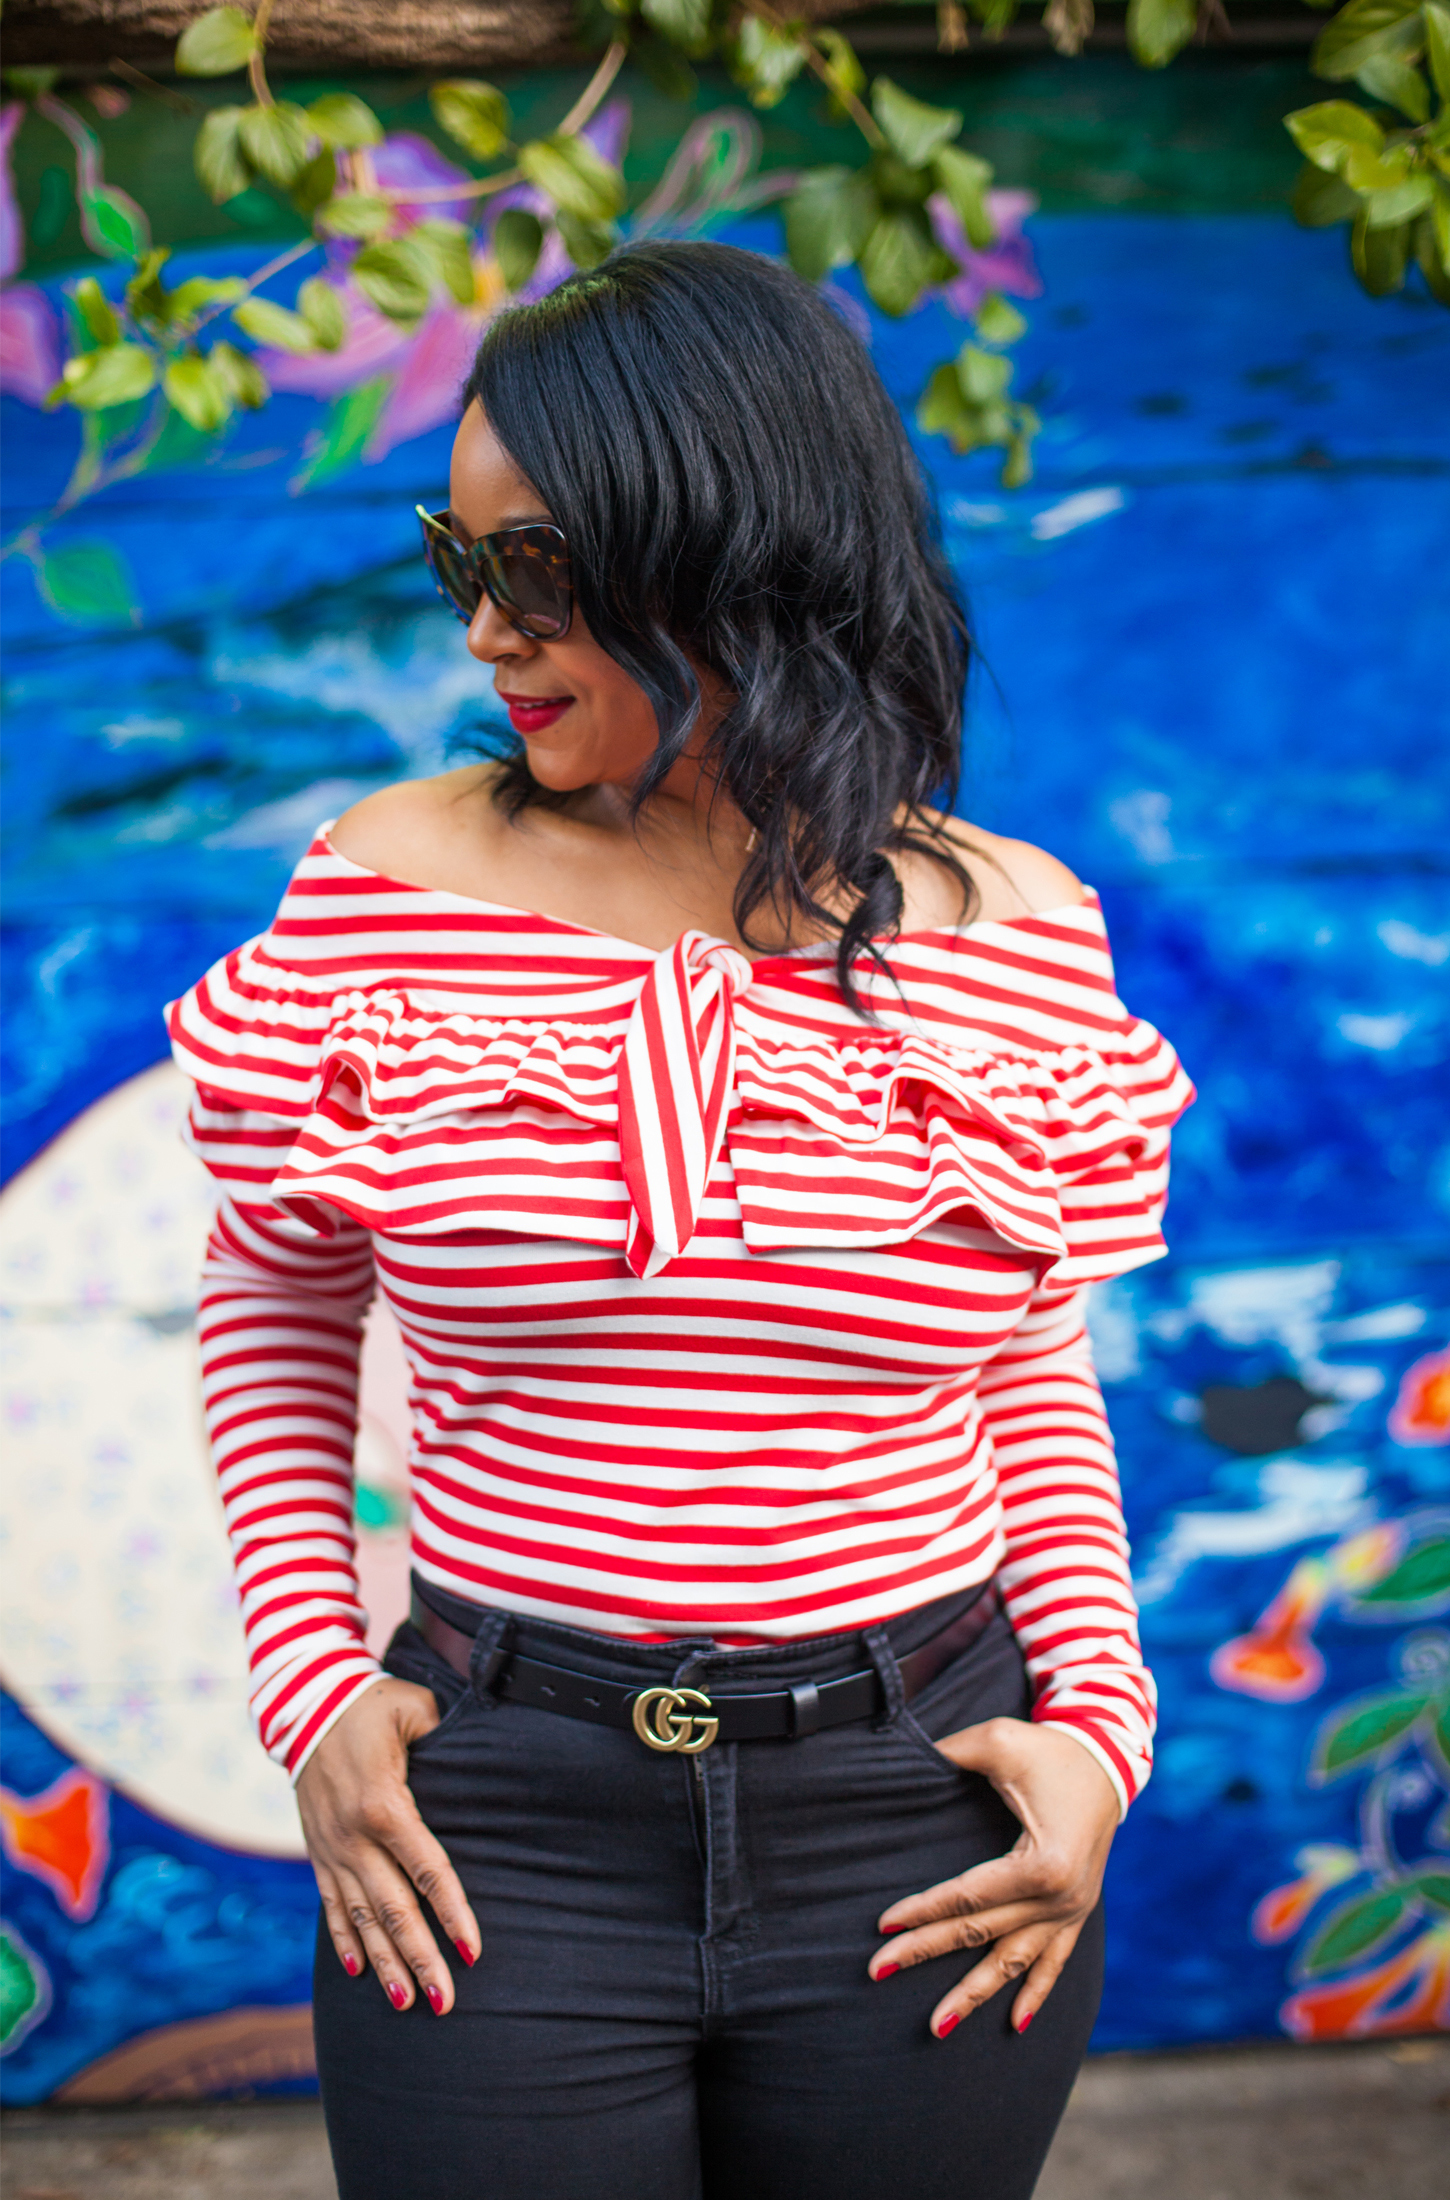 What's Your Mission? (Outfit details: H&M off-the-shoulder top in red & white stripe / Forever 21 High-Waisted Skinny Jeans / Gucci belt / Kiltie Nine West Govern d'Orsay Loafers) - Mission District, San Francisco